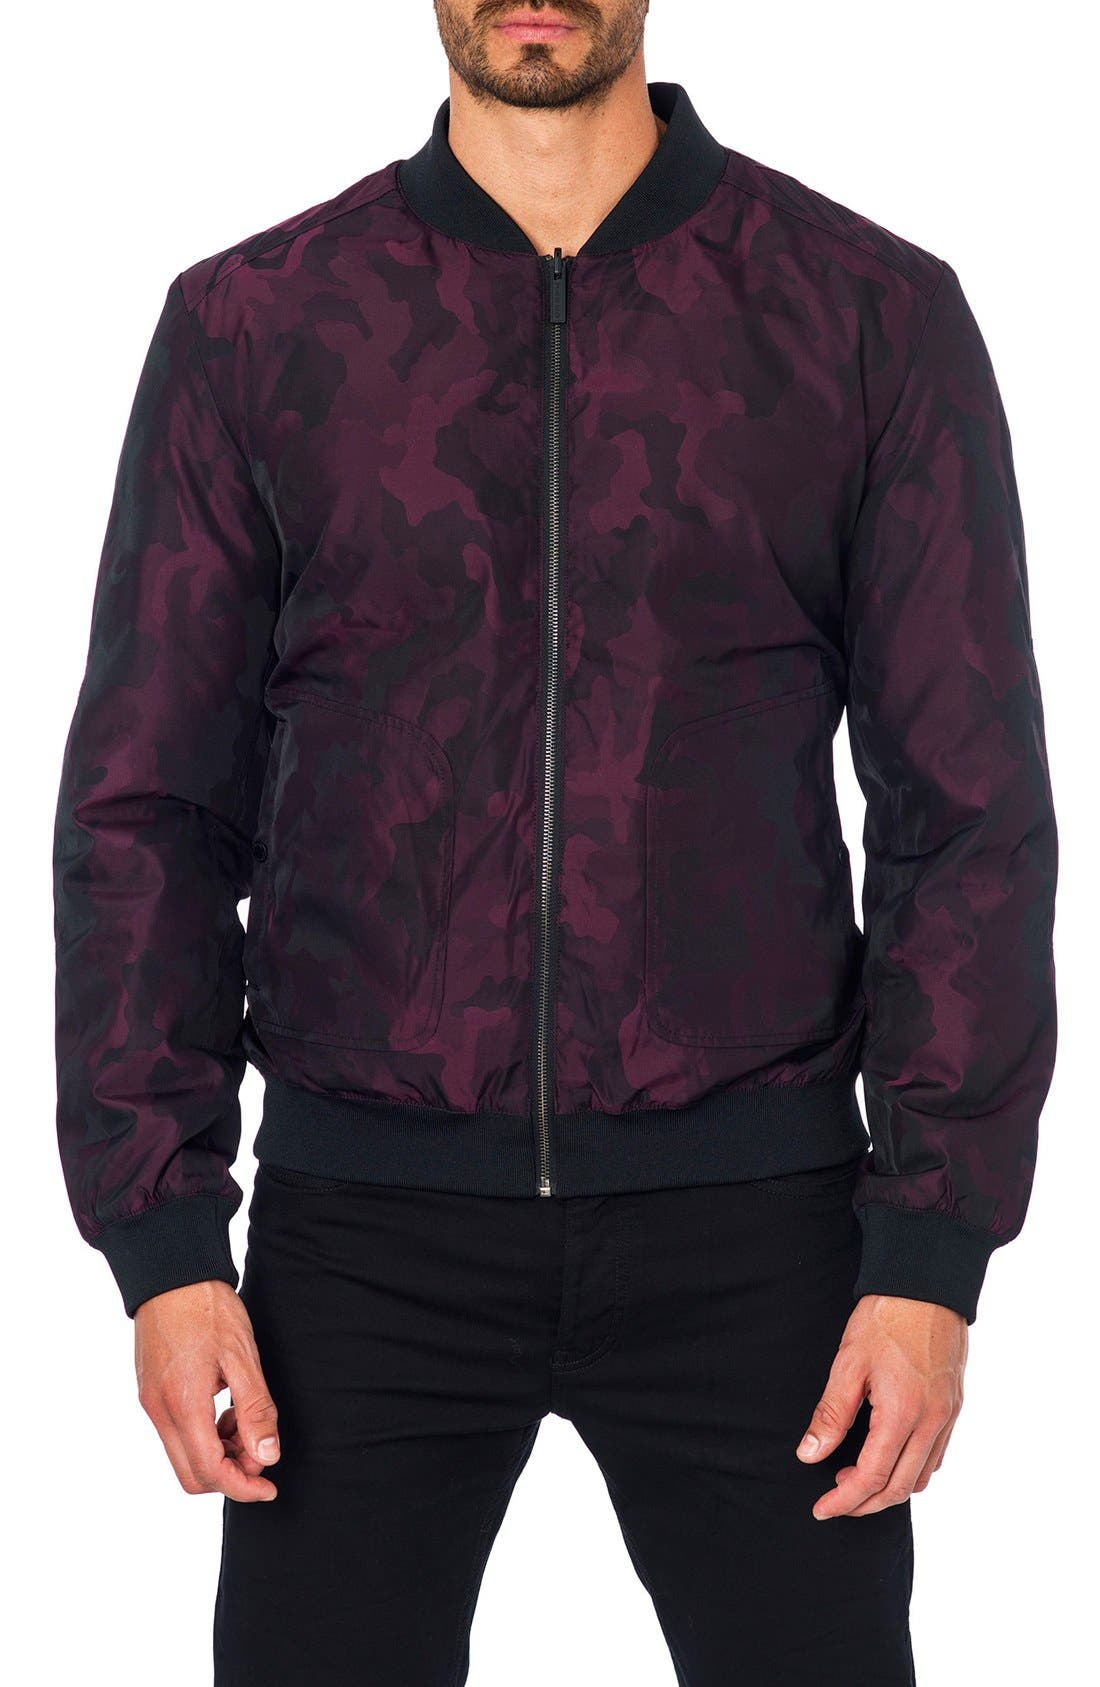 New York Reversible Bomber Jacket,                             Main thumbnail 1, color,                             Burgundy Camo/ Black Quilted